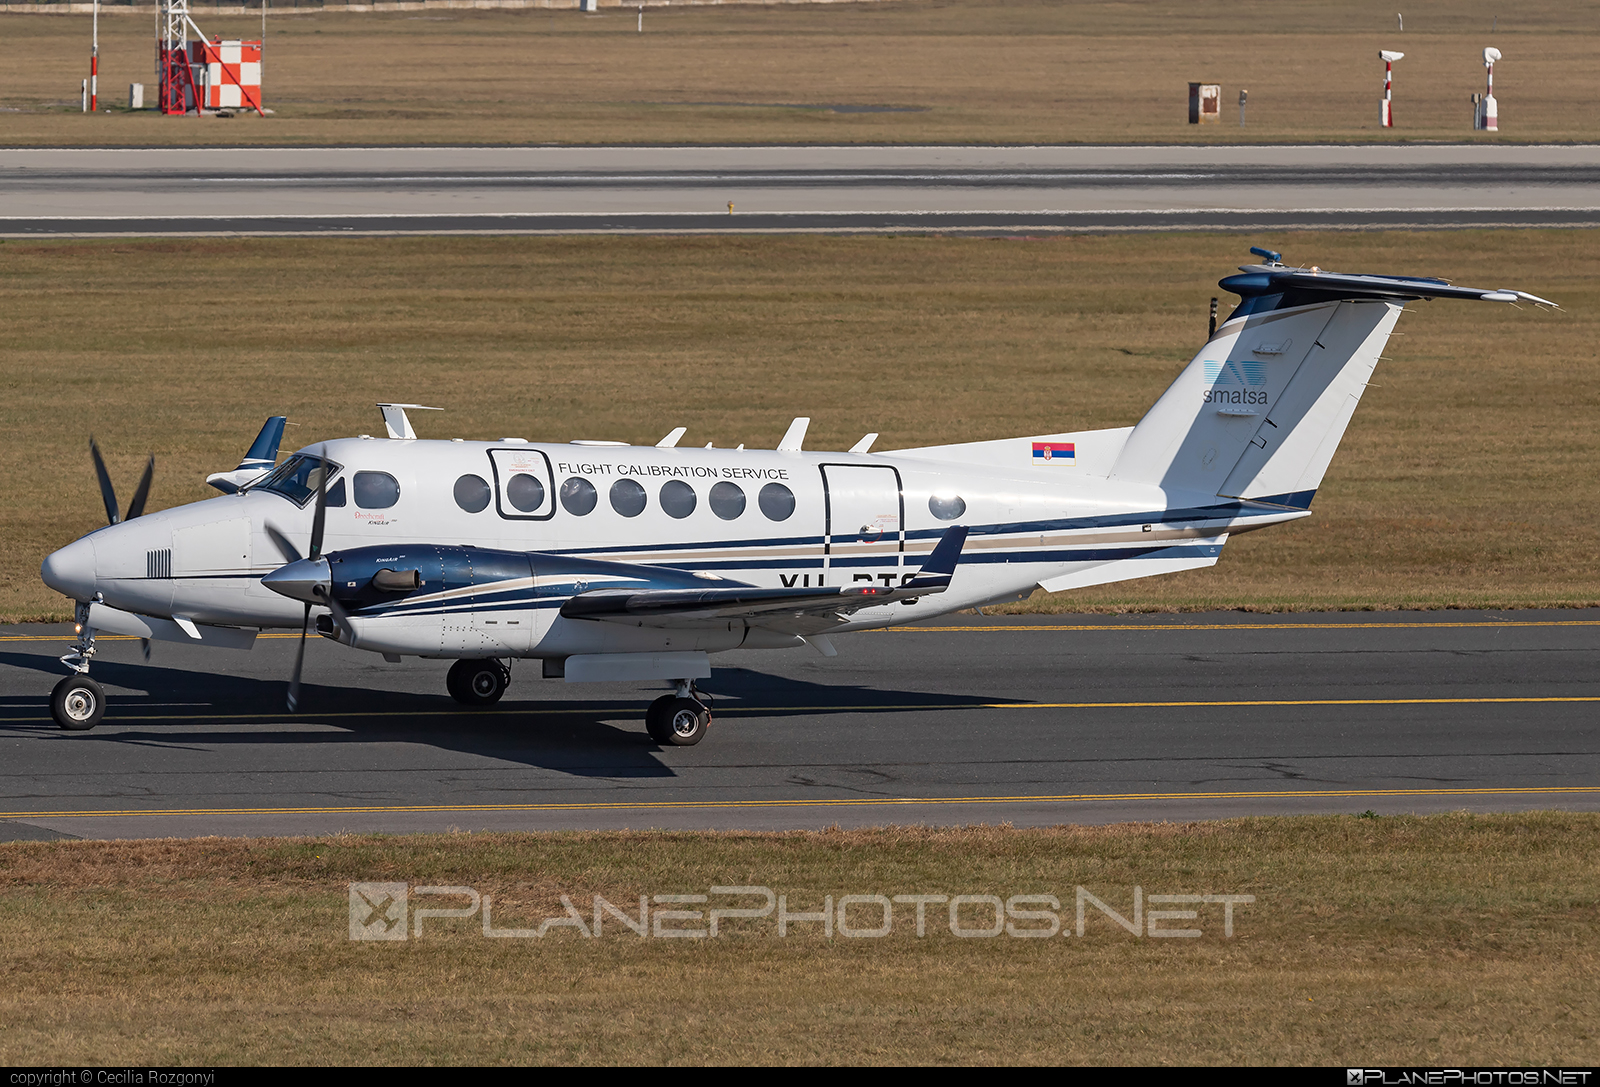 Beechcraft King Air 350 - YU-BTC operated by Serbia and Montenegro Air Traffic Services Agency (SMATSA) #beechb300 #beechcraft #beechcraftb300 #kingair #kingair350